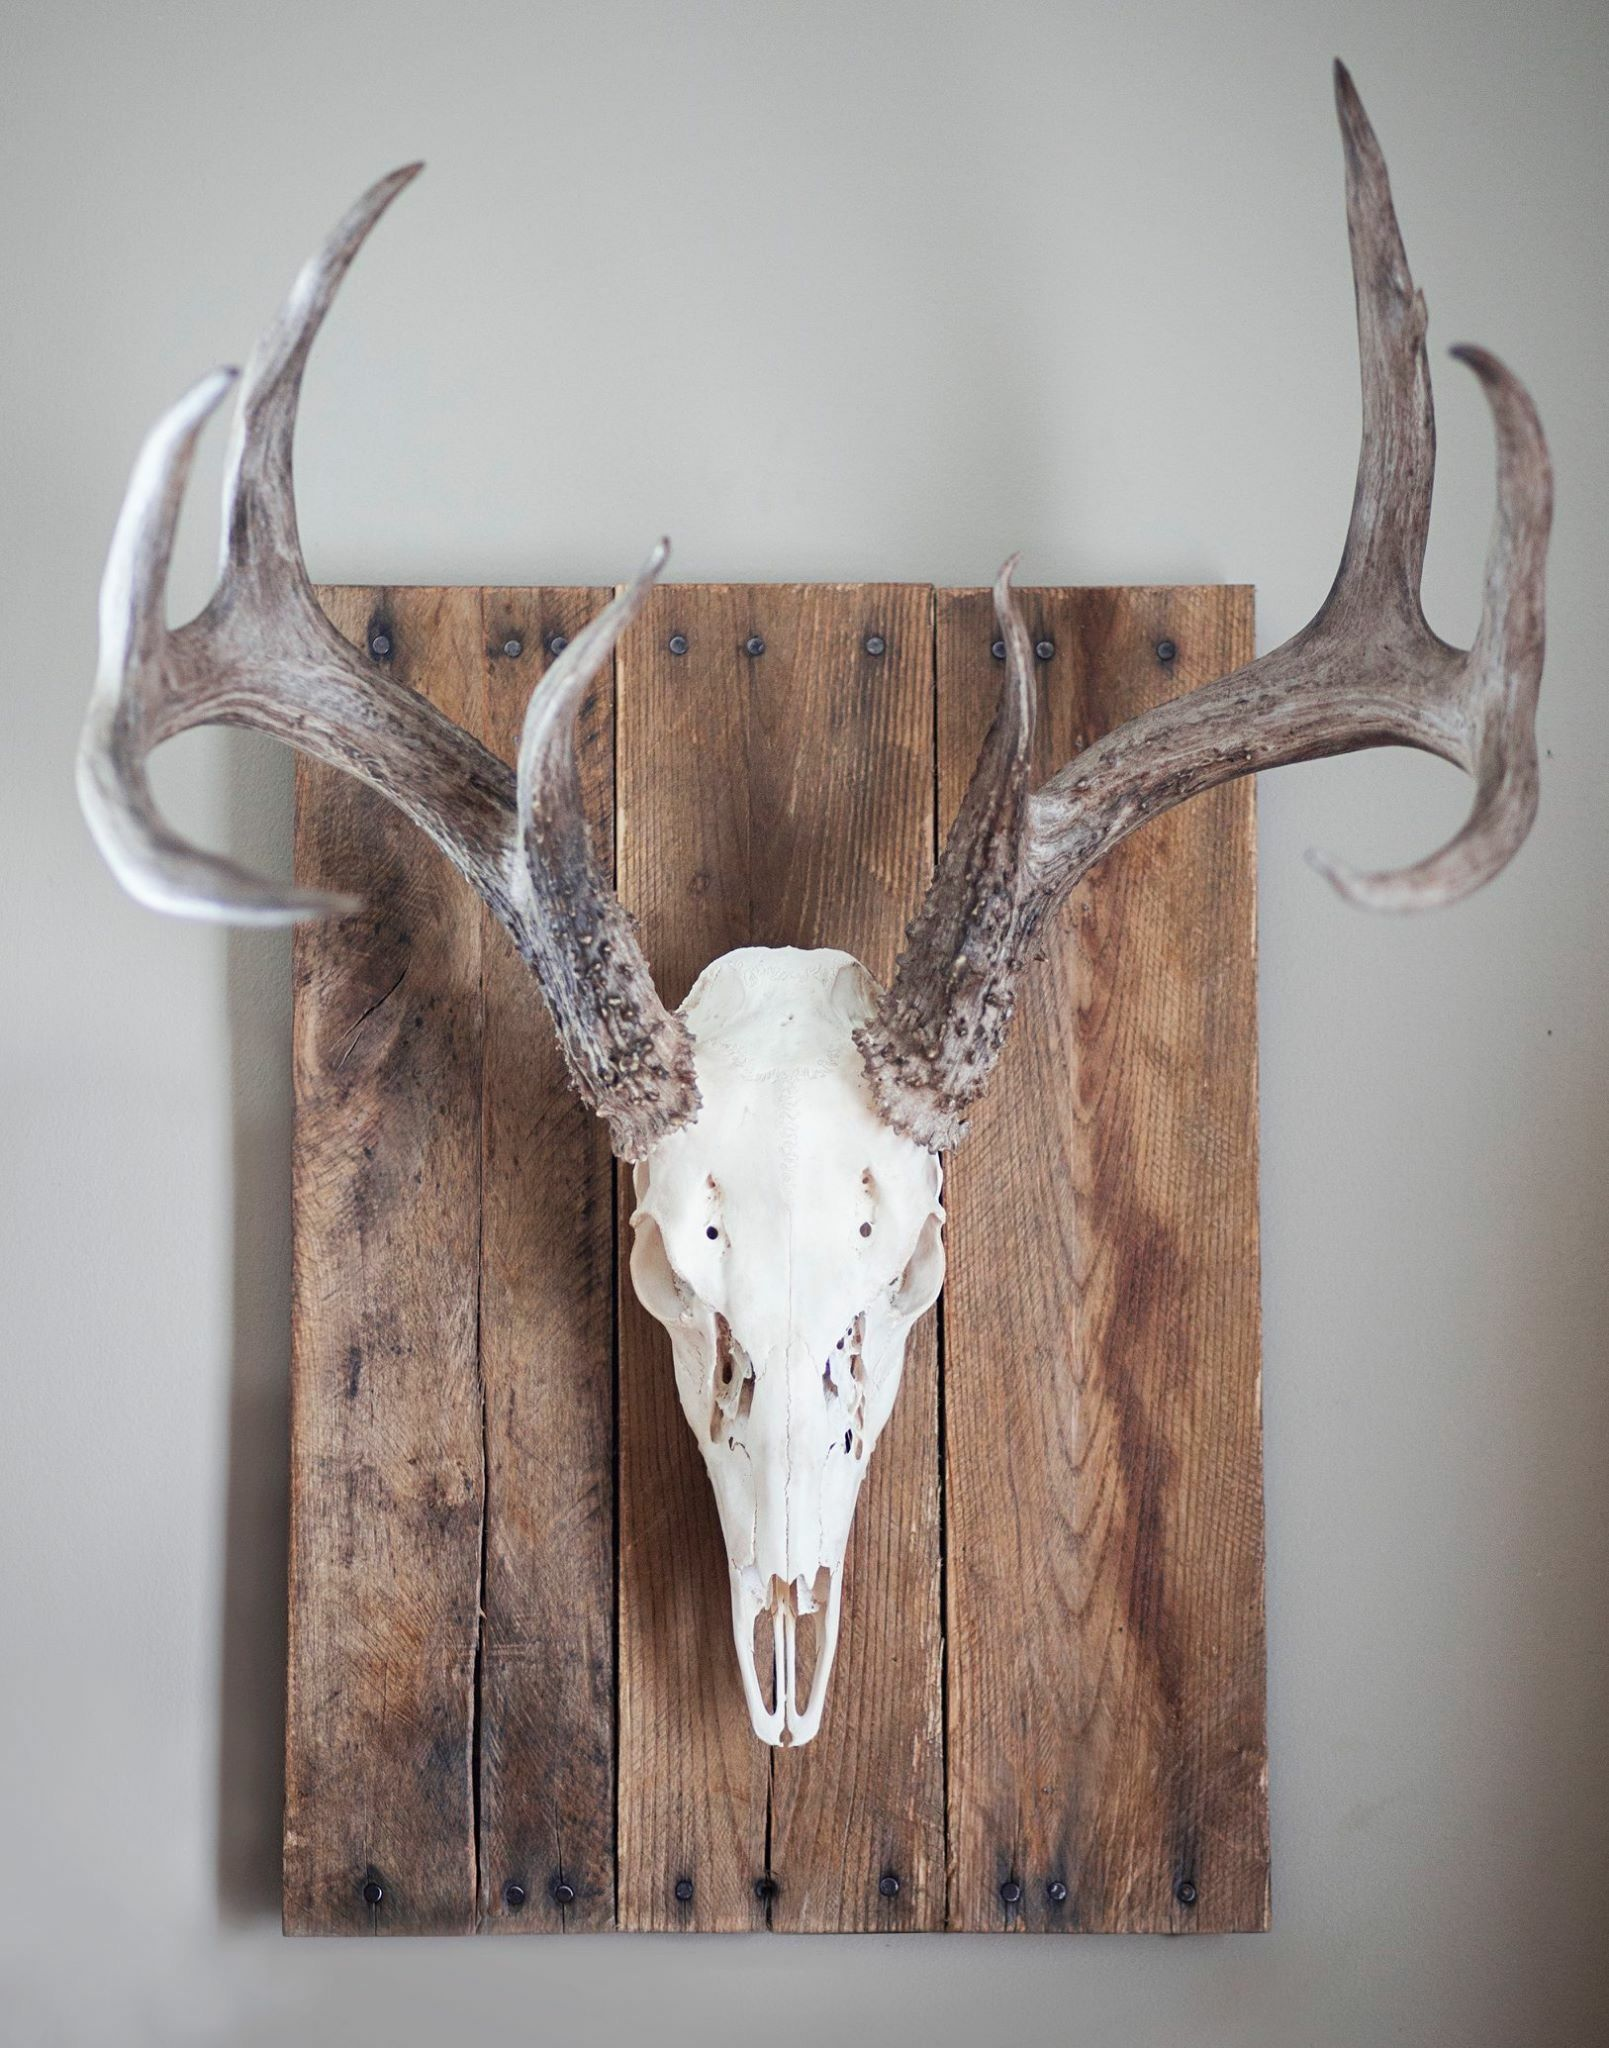 Deer skull mount ideas - Deer Mounts Whitened Skull With Weathered Wood Wall Plaque This Wall Plaque Can Be Added To Any